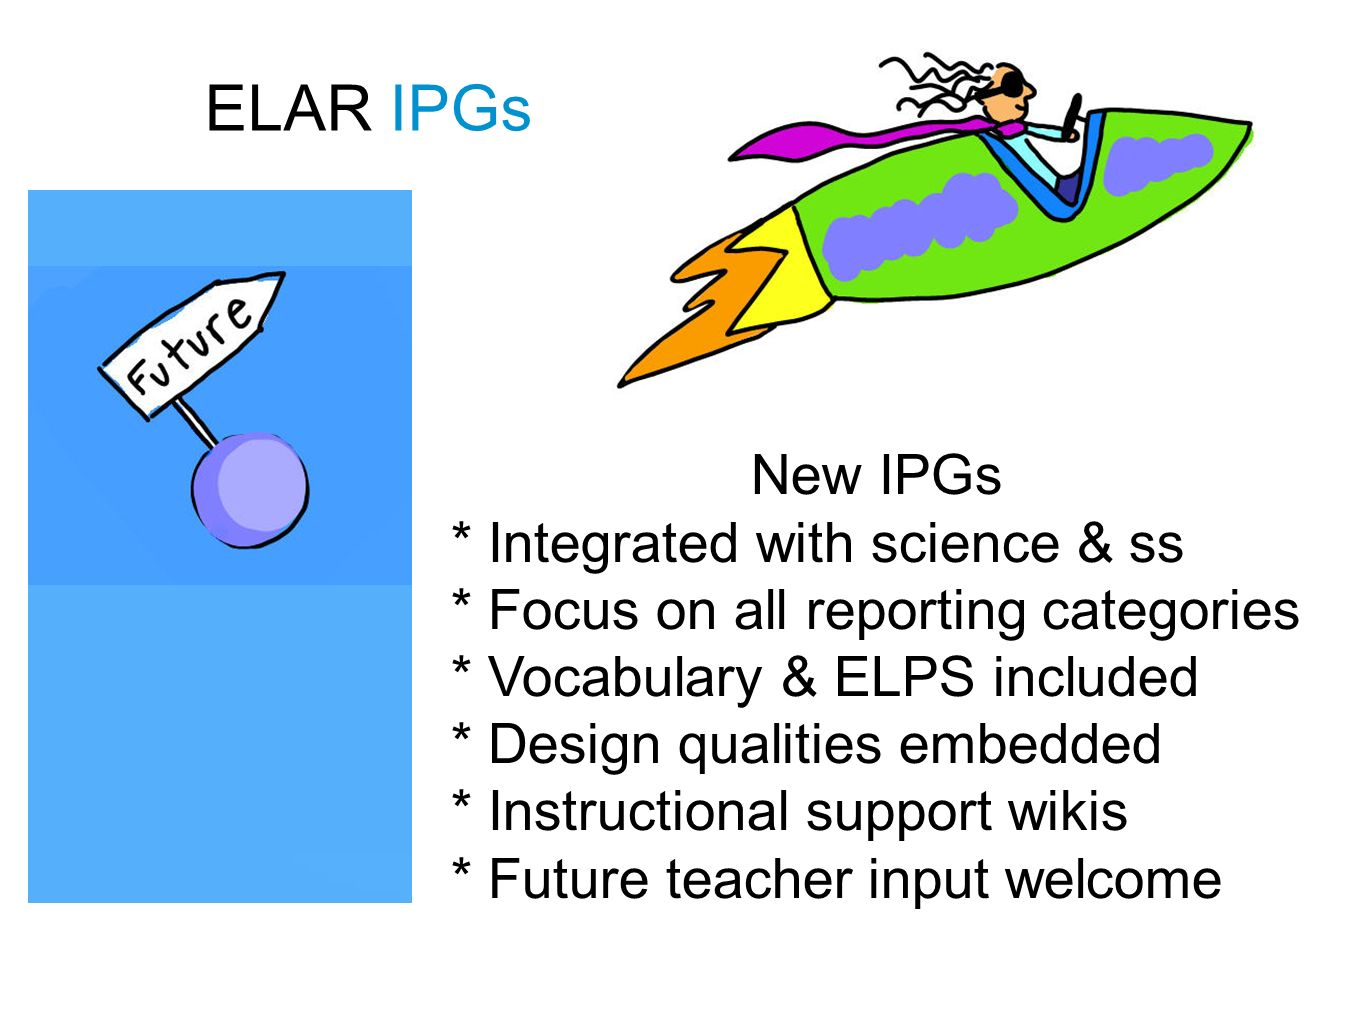 ELAR IPGs New IPGs * Integrated with science & ss * Focus on all reporting categories * Vocabulary & ELPS included * Design qualities embedded * Instructional support wikis * Future teacher input welcome